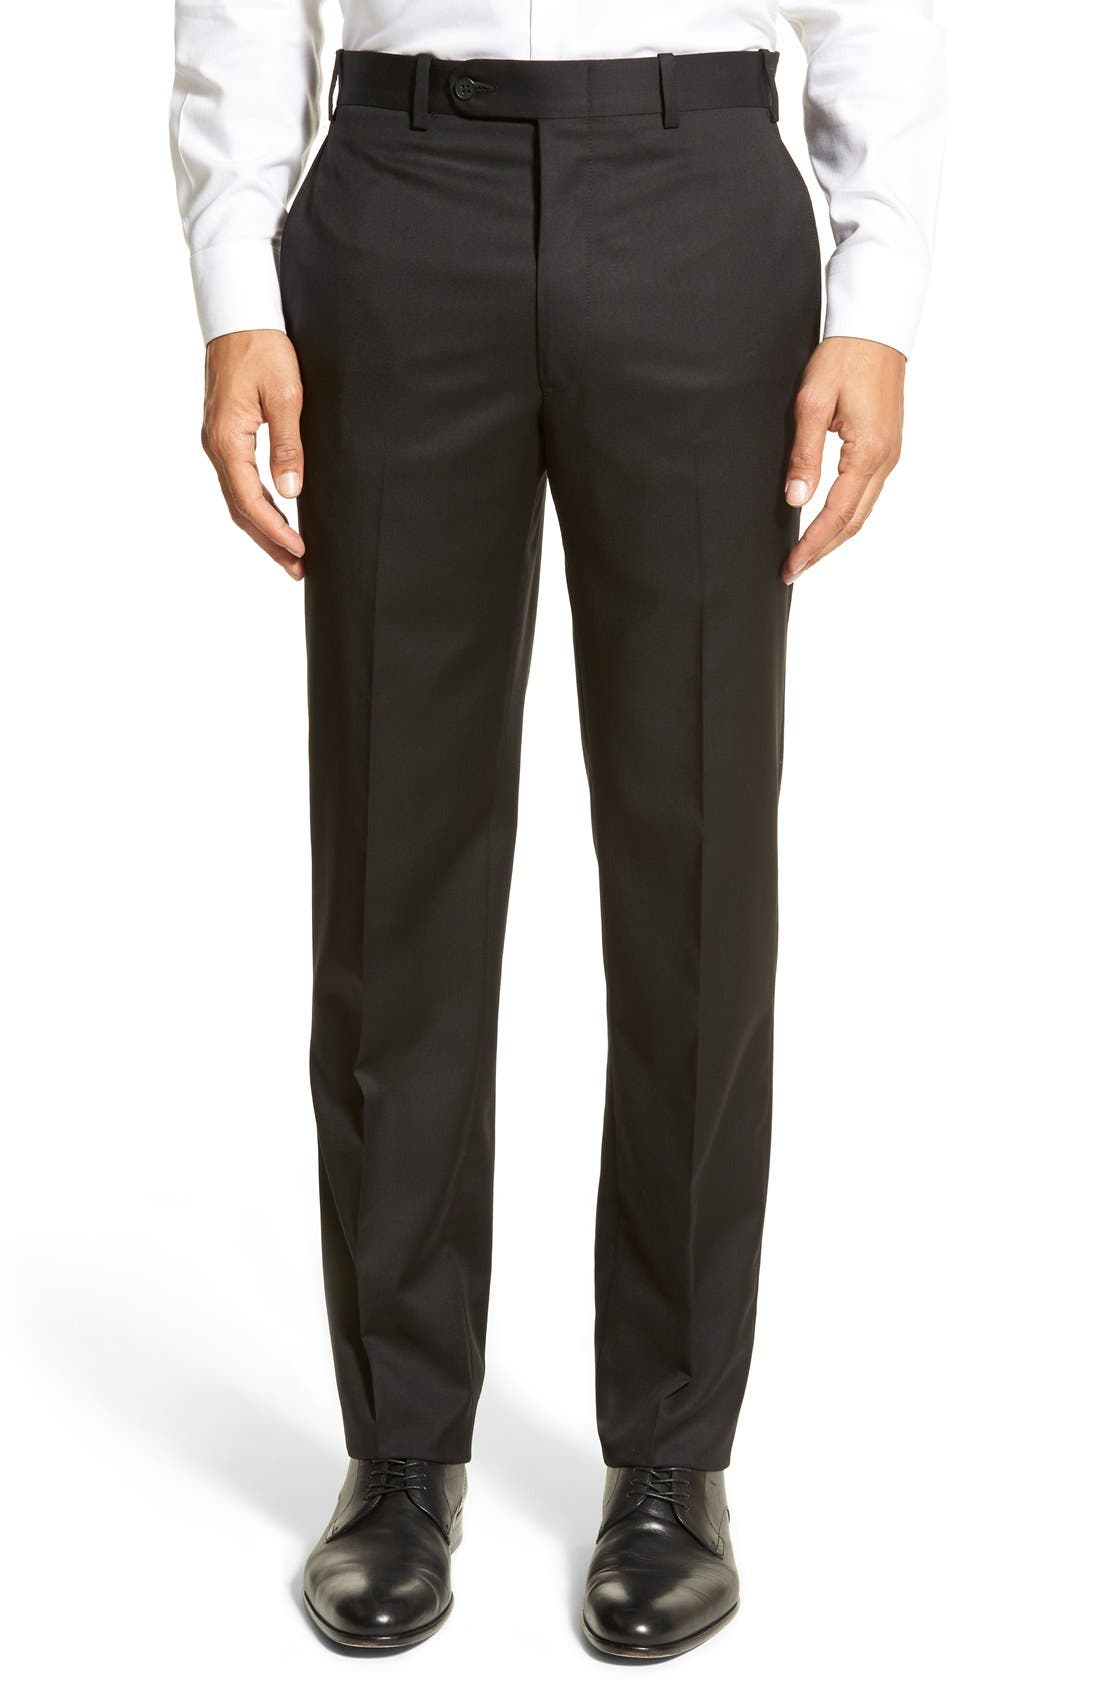 DI MILANO UOMO, 'Torino' Flat Front Solid Wool Trousers, Main thumbnail 1, color, 001